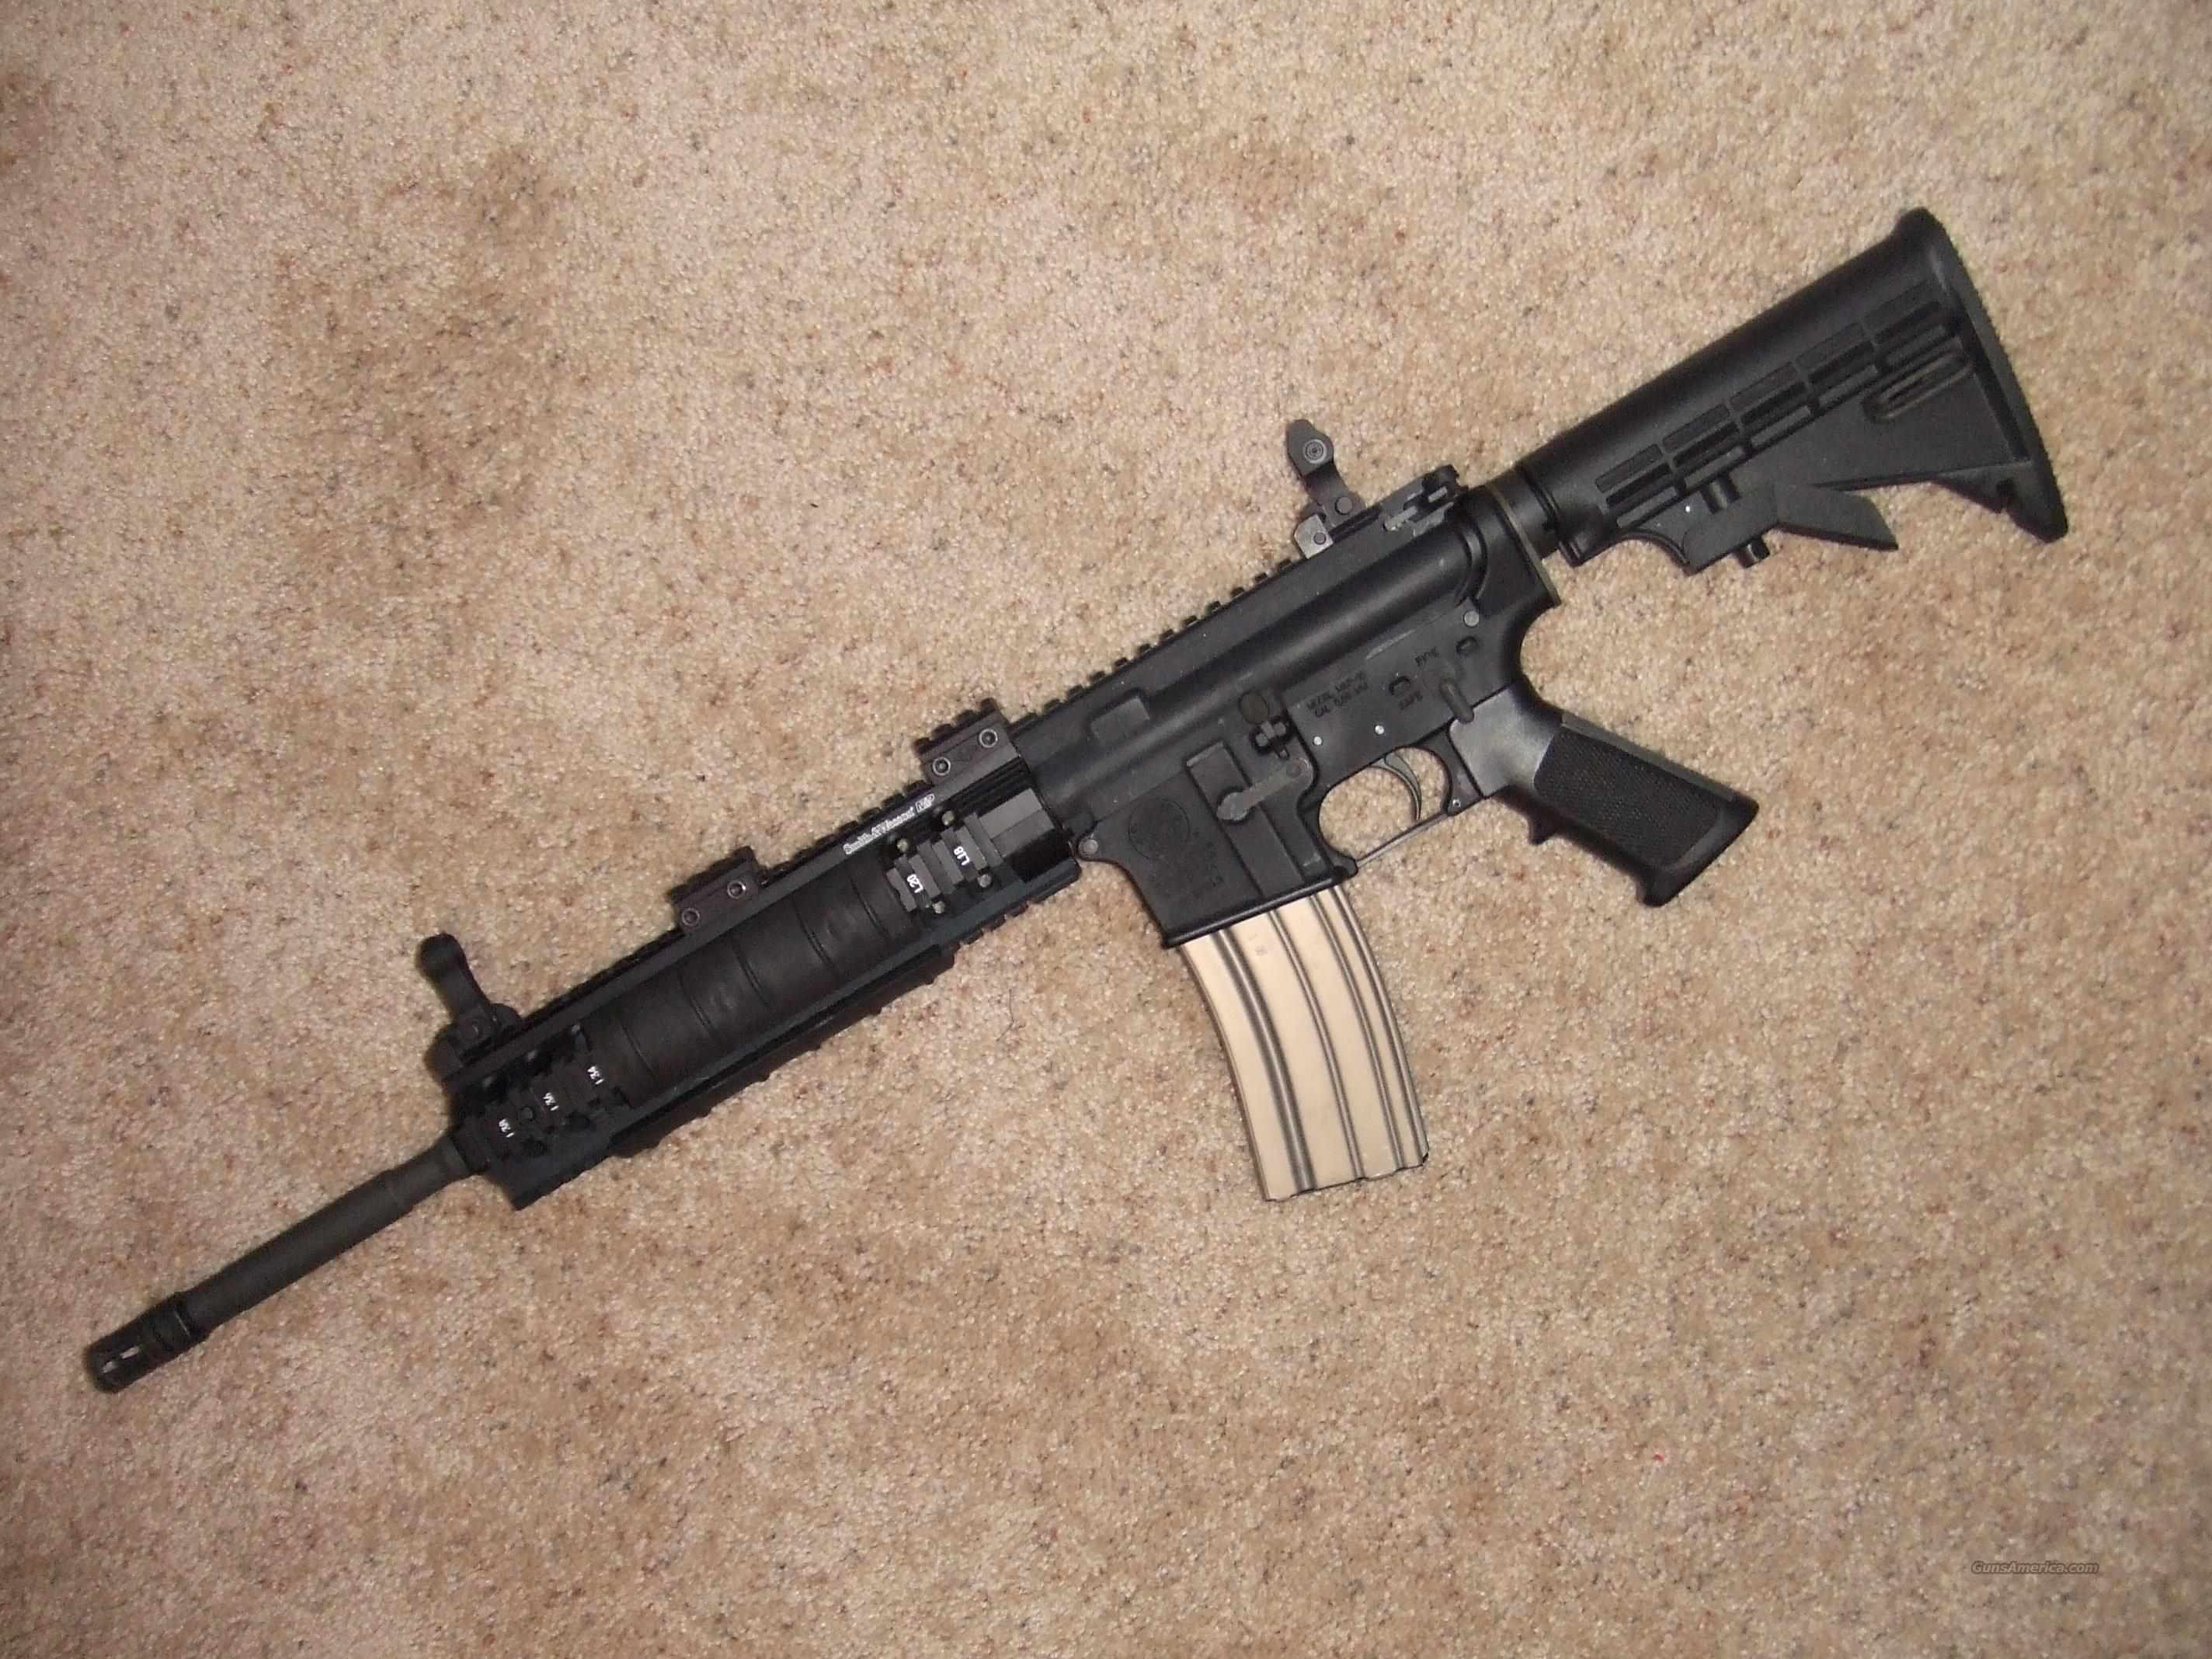 S&W  M&P AR-15T AR15-T AR15 Smith&Wesson  Guns > Rifles > AR-15 Rifles - Small Manufacturers > Complete Rifle